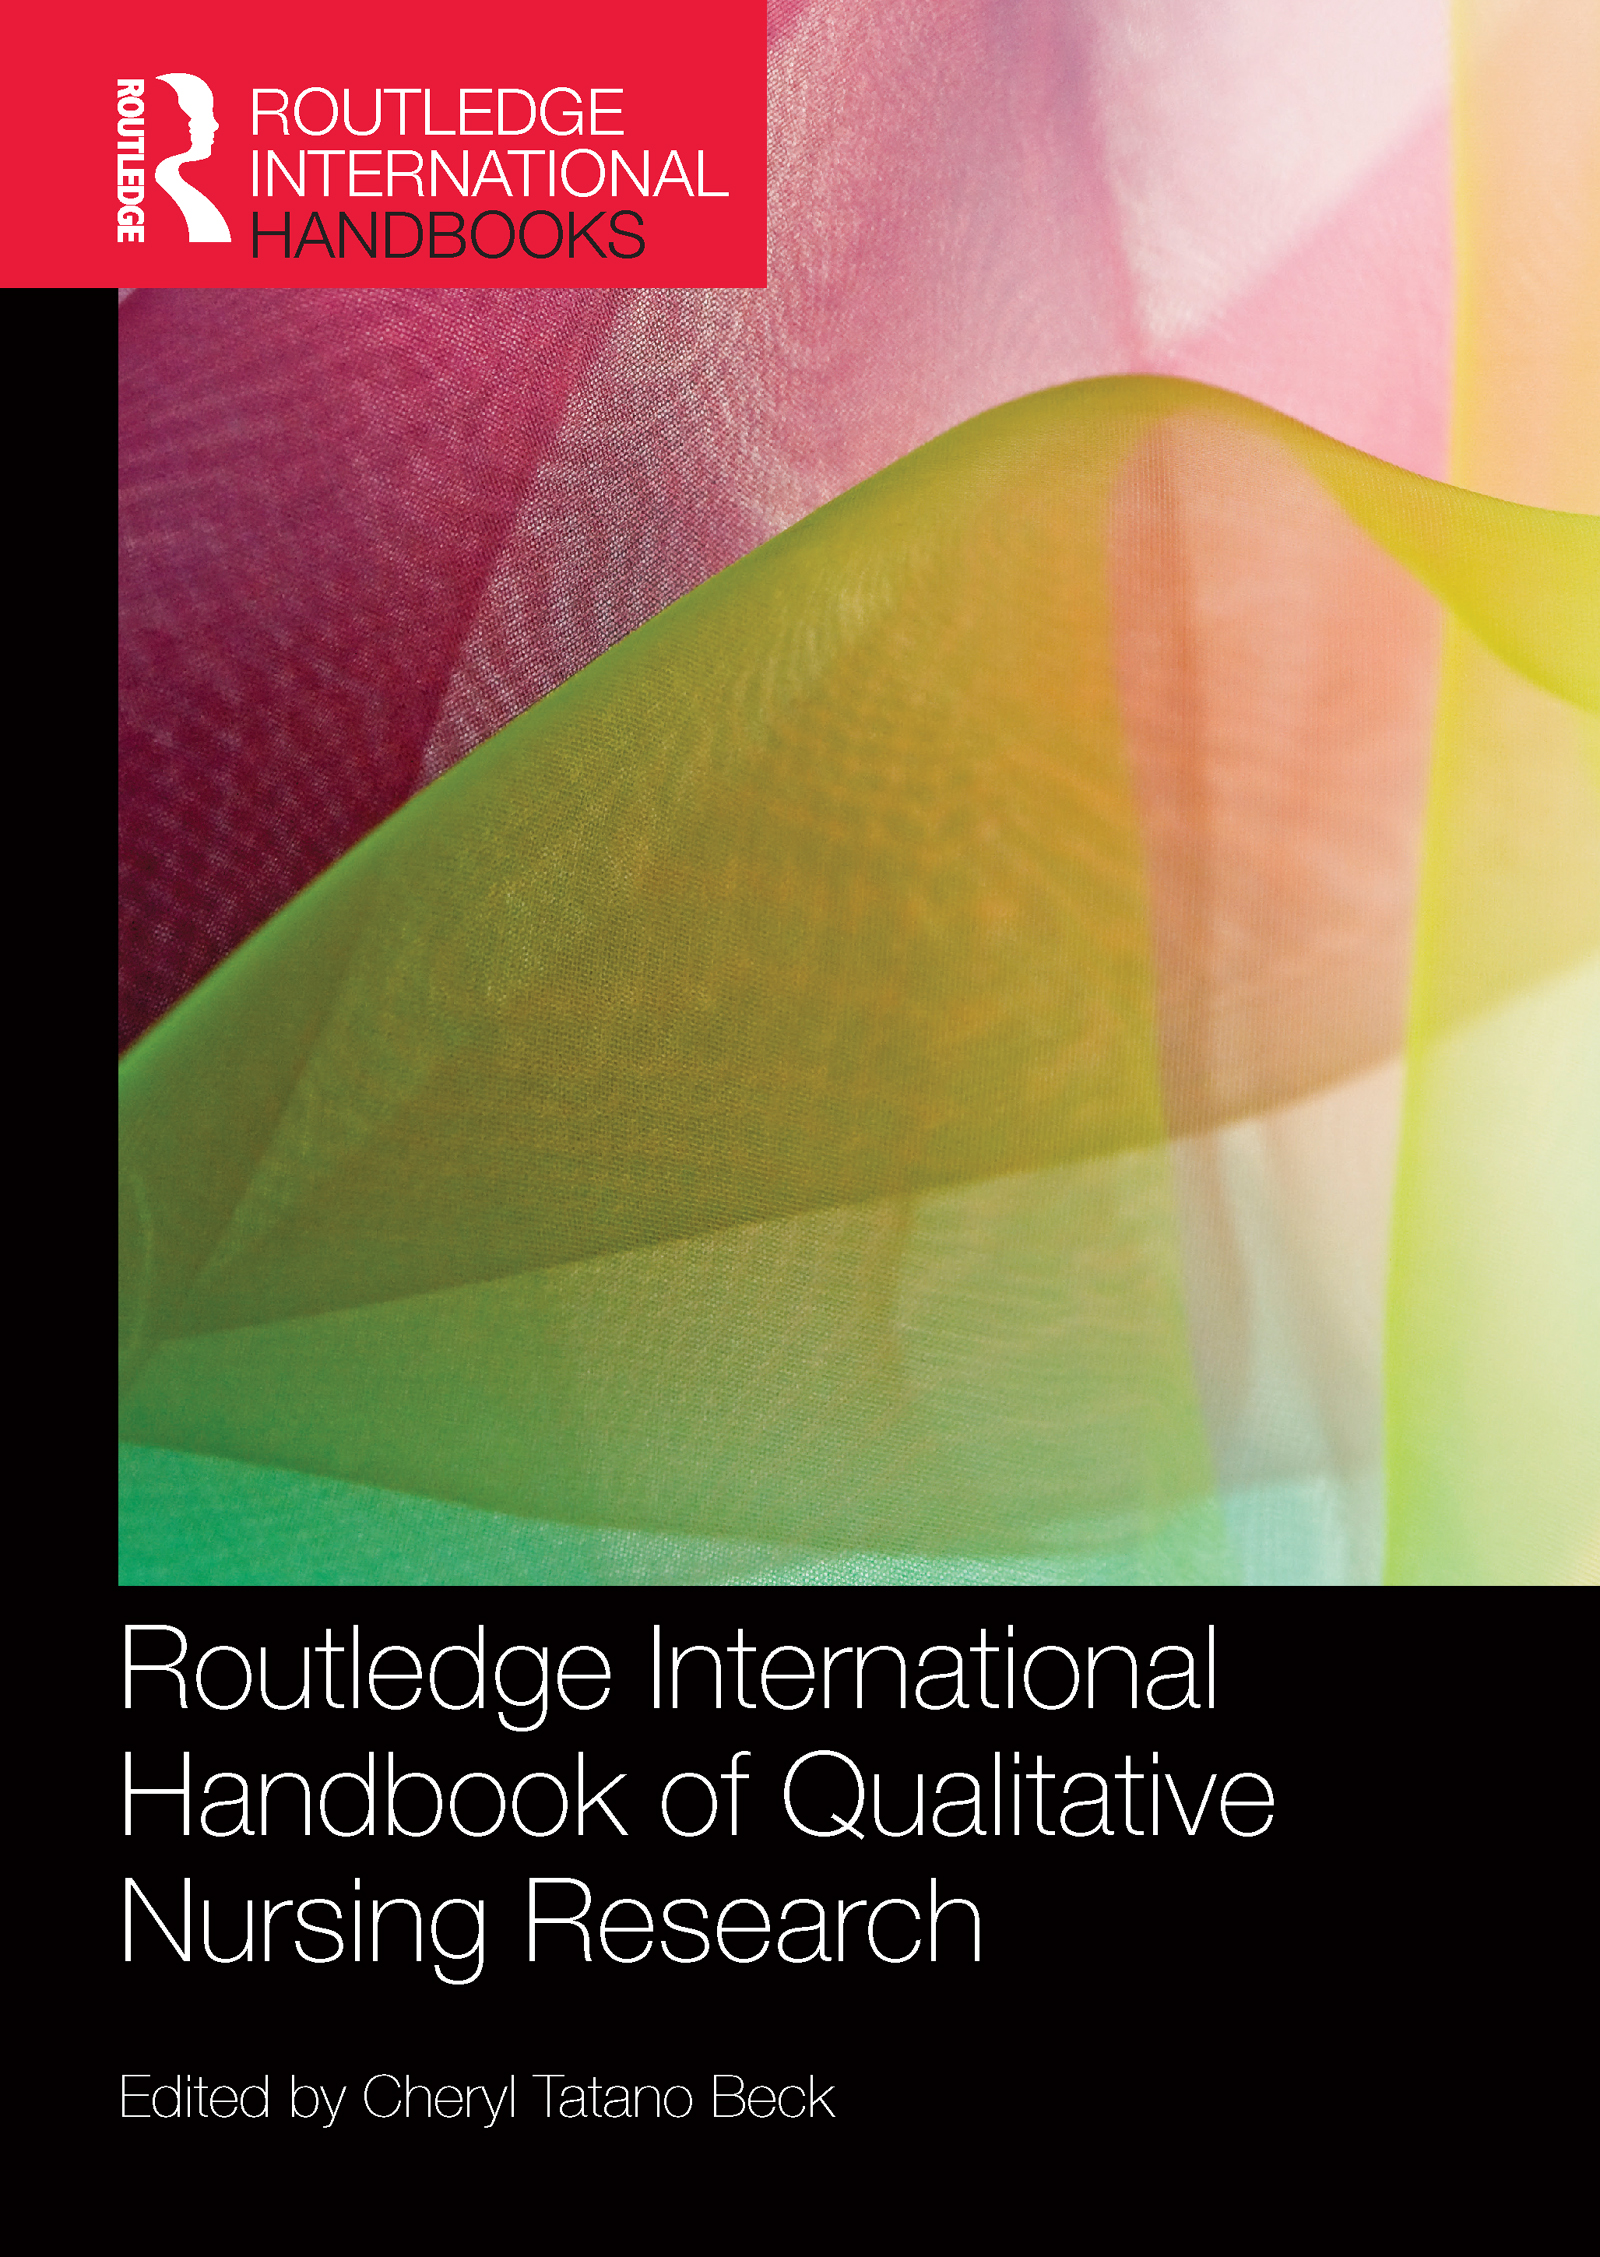 Routledge International Handbook of Qualitative Nursing Research: 1st Edition (Paperback) book cover